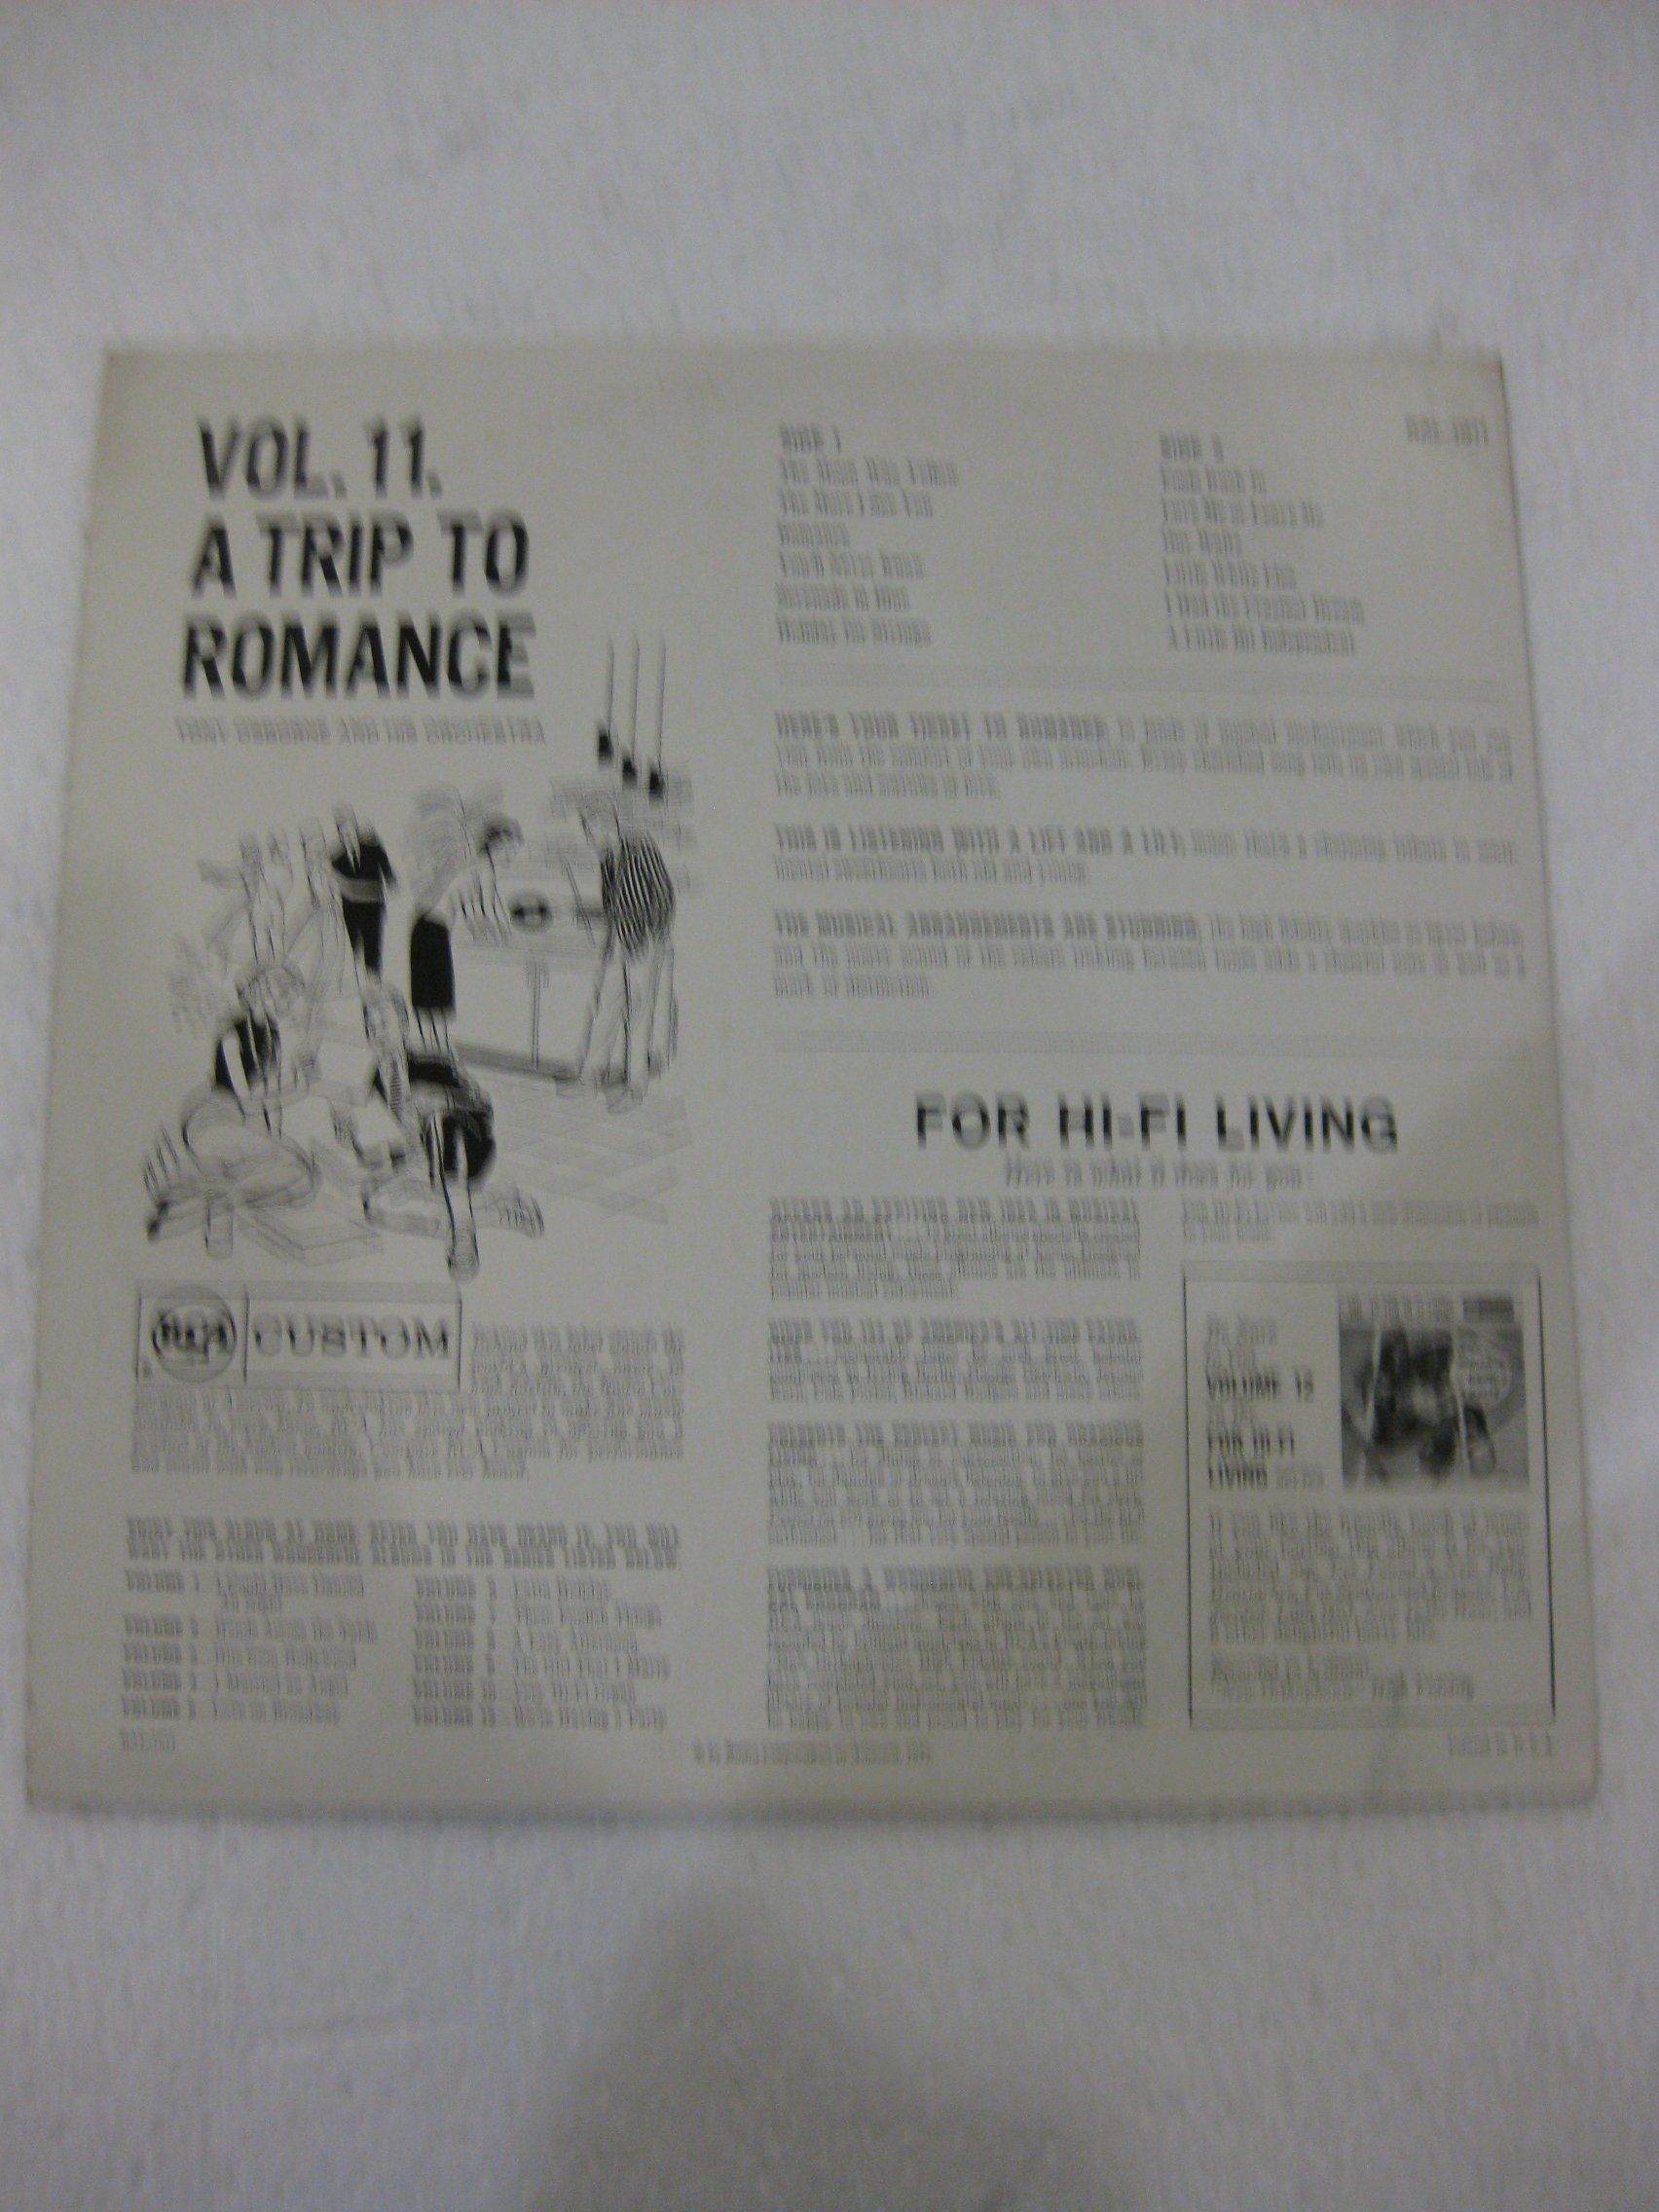 A Trip To Romance Tony Osborne And His Orchestra Vol. 11 For Hi-Fi Living